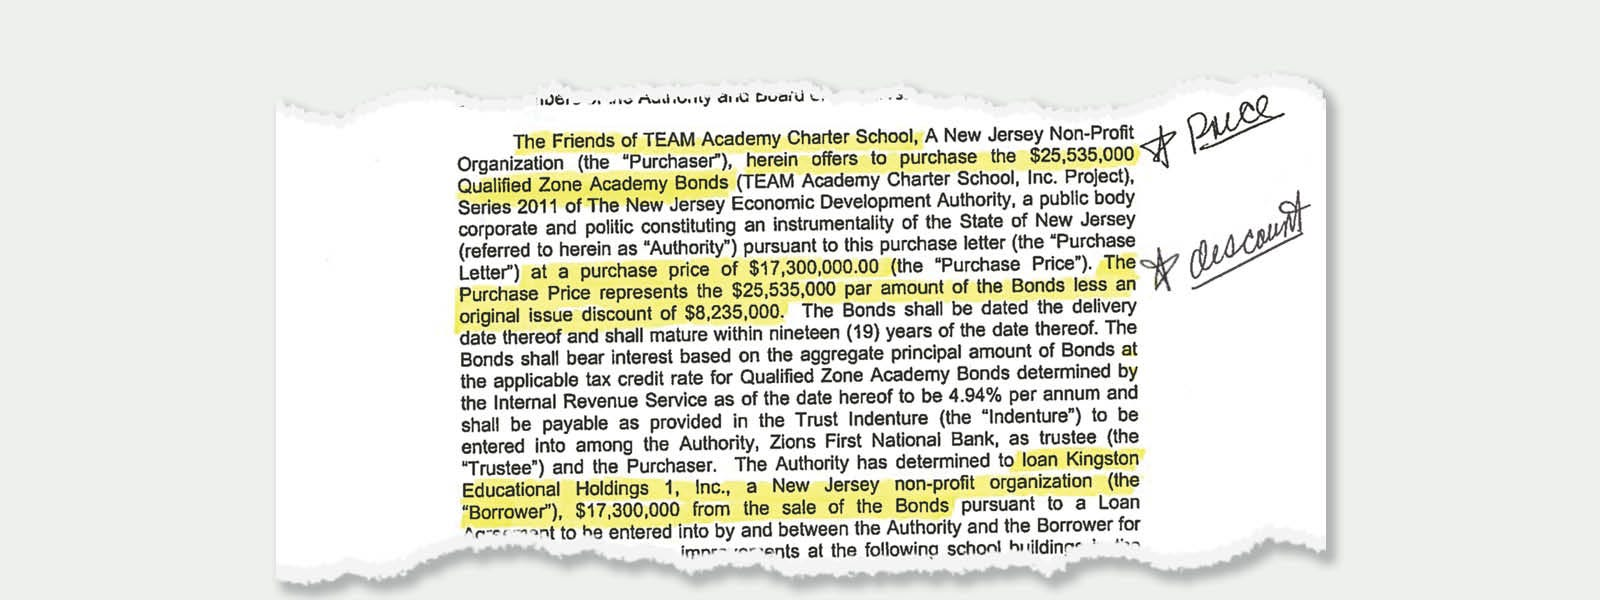 This is a purchase agreement showing that the Friends of TEAM bought bonds instead of outside investors. It also highlights the discounts it received.